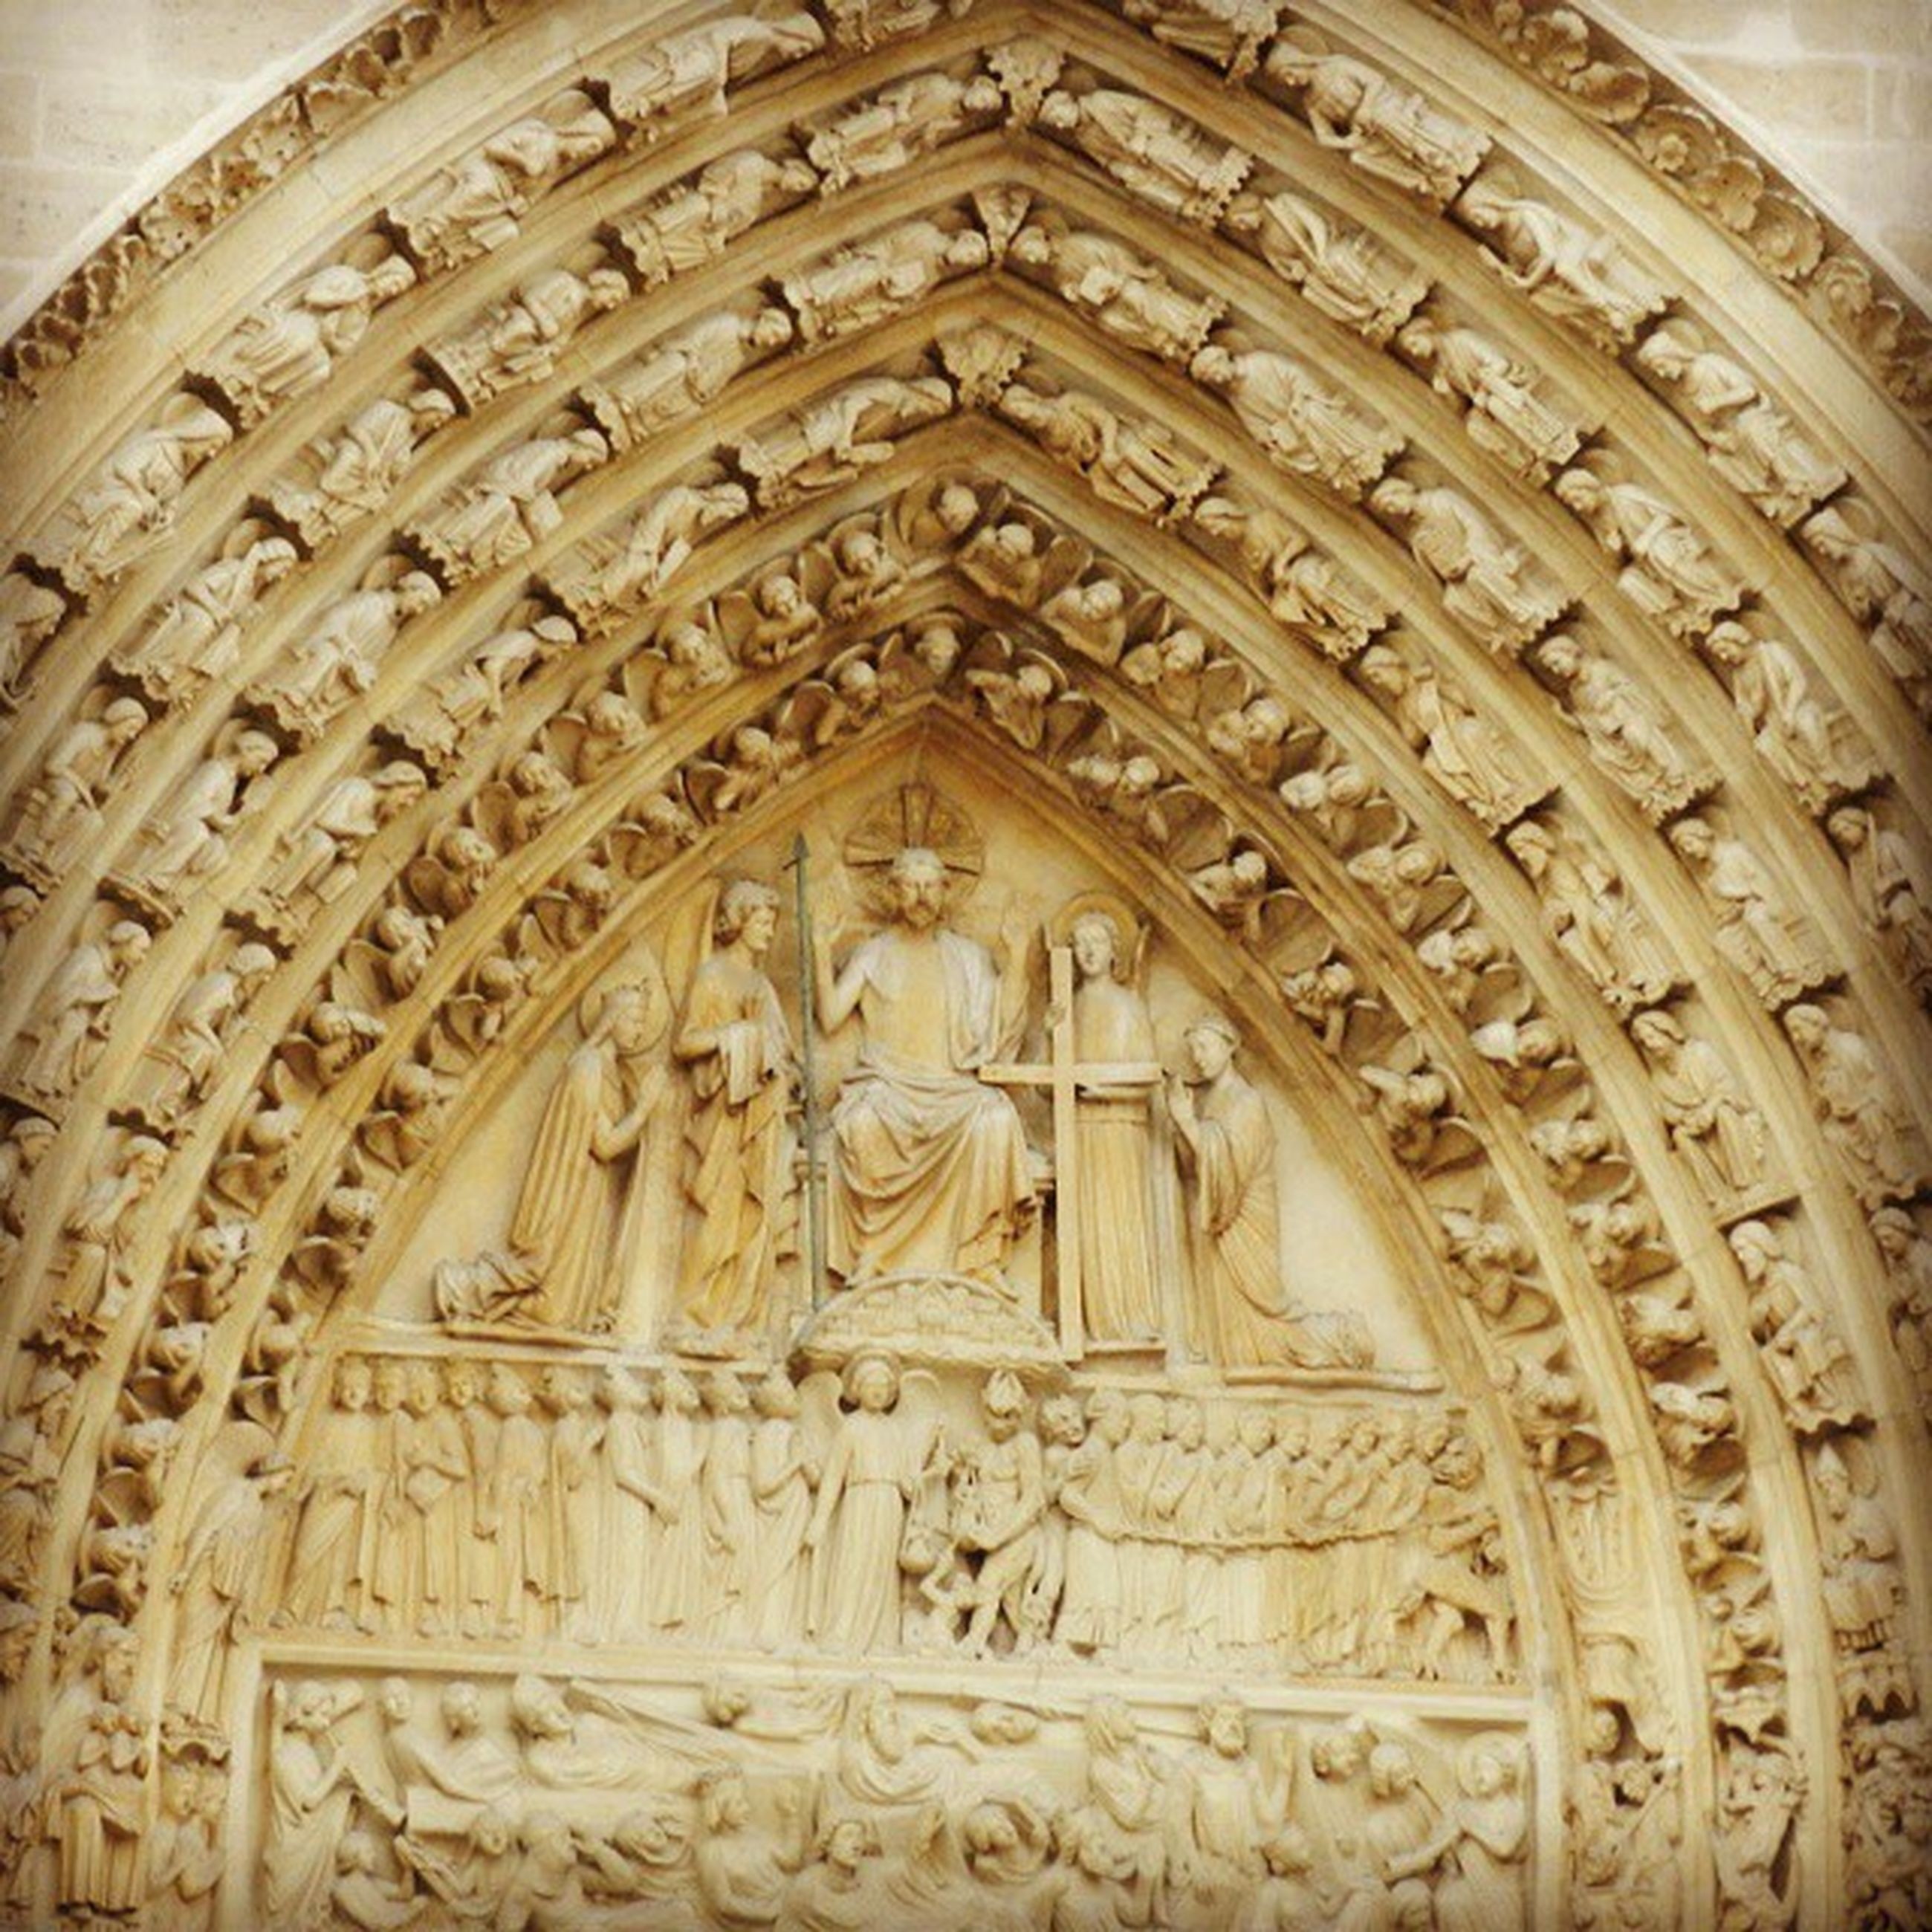 architecture, built structure, place of worship, religion, spirituality, indoors, ornate, low angle view, building exterior, design, art and craft, church, history, pattern, arch, architectural feature, carving - craft product, art, cathedral